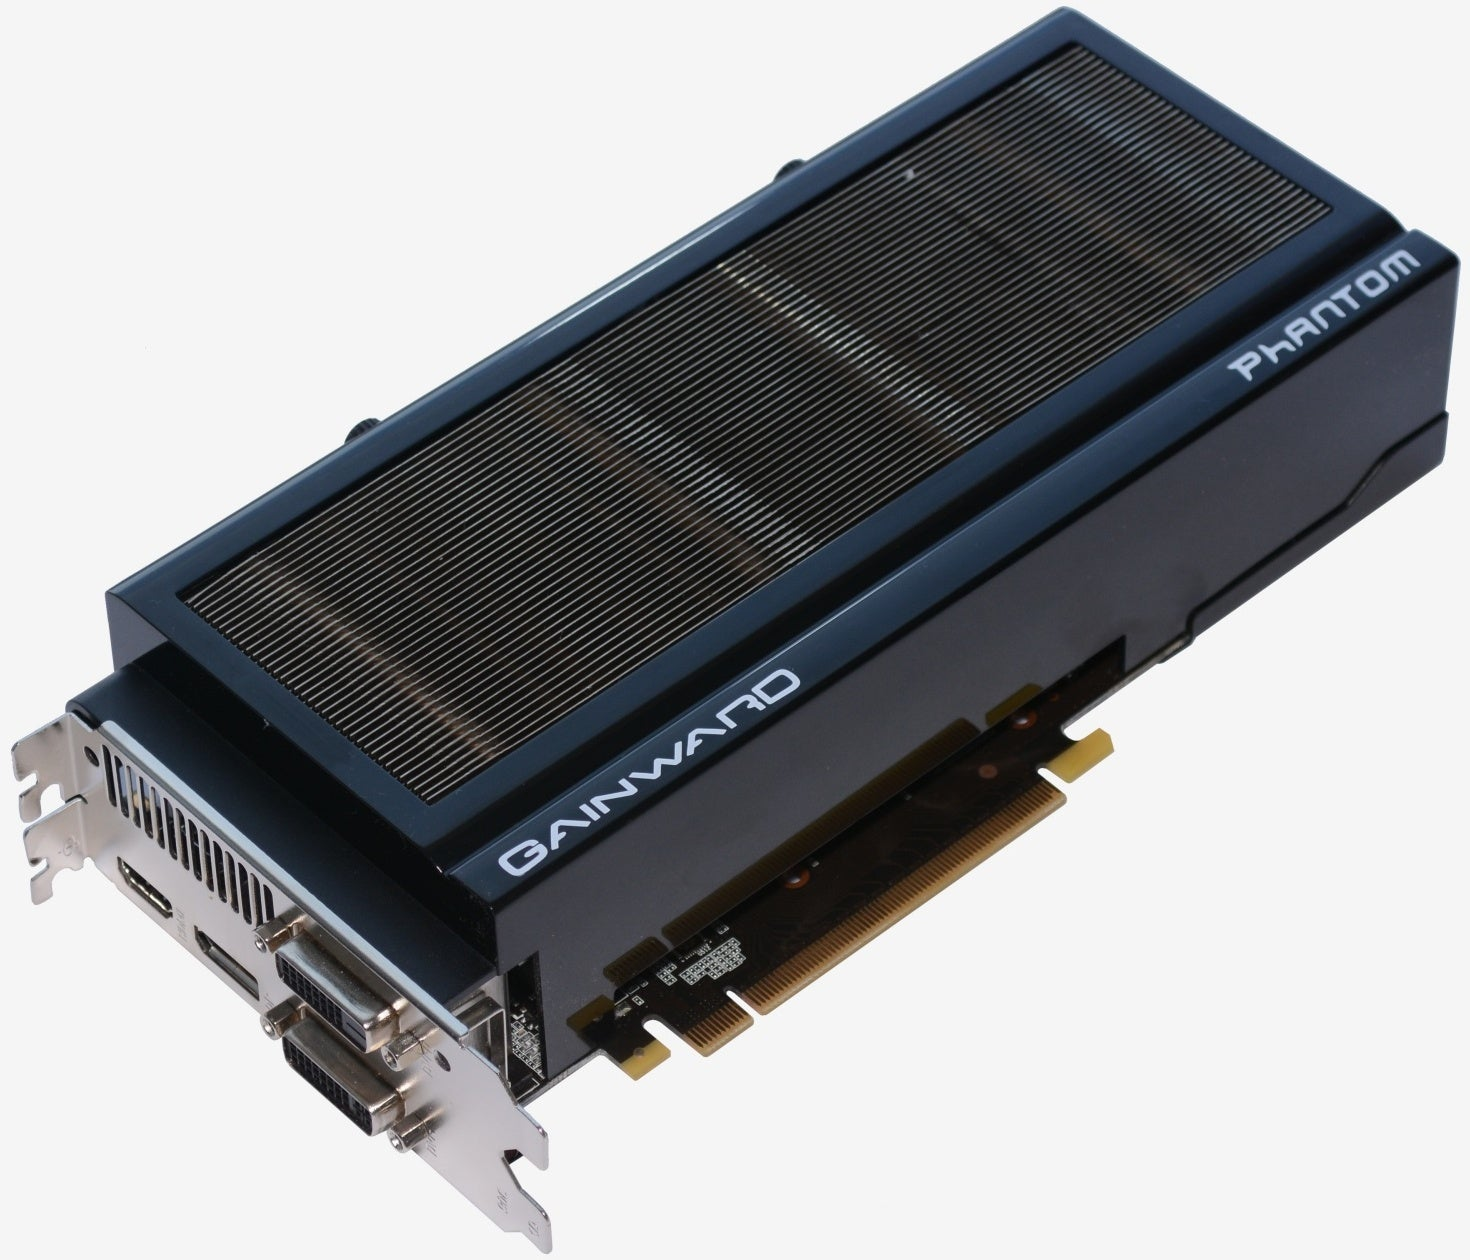 Geforce GTX 960 Review: Sweet Spot' GPU or Not?